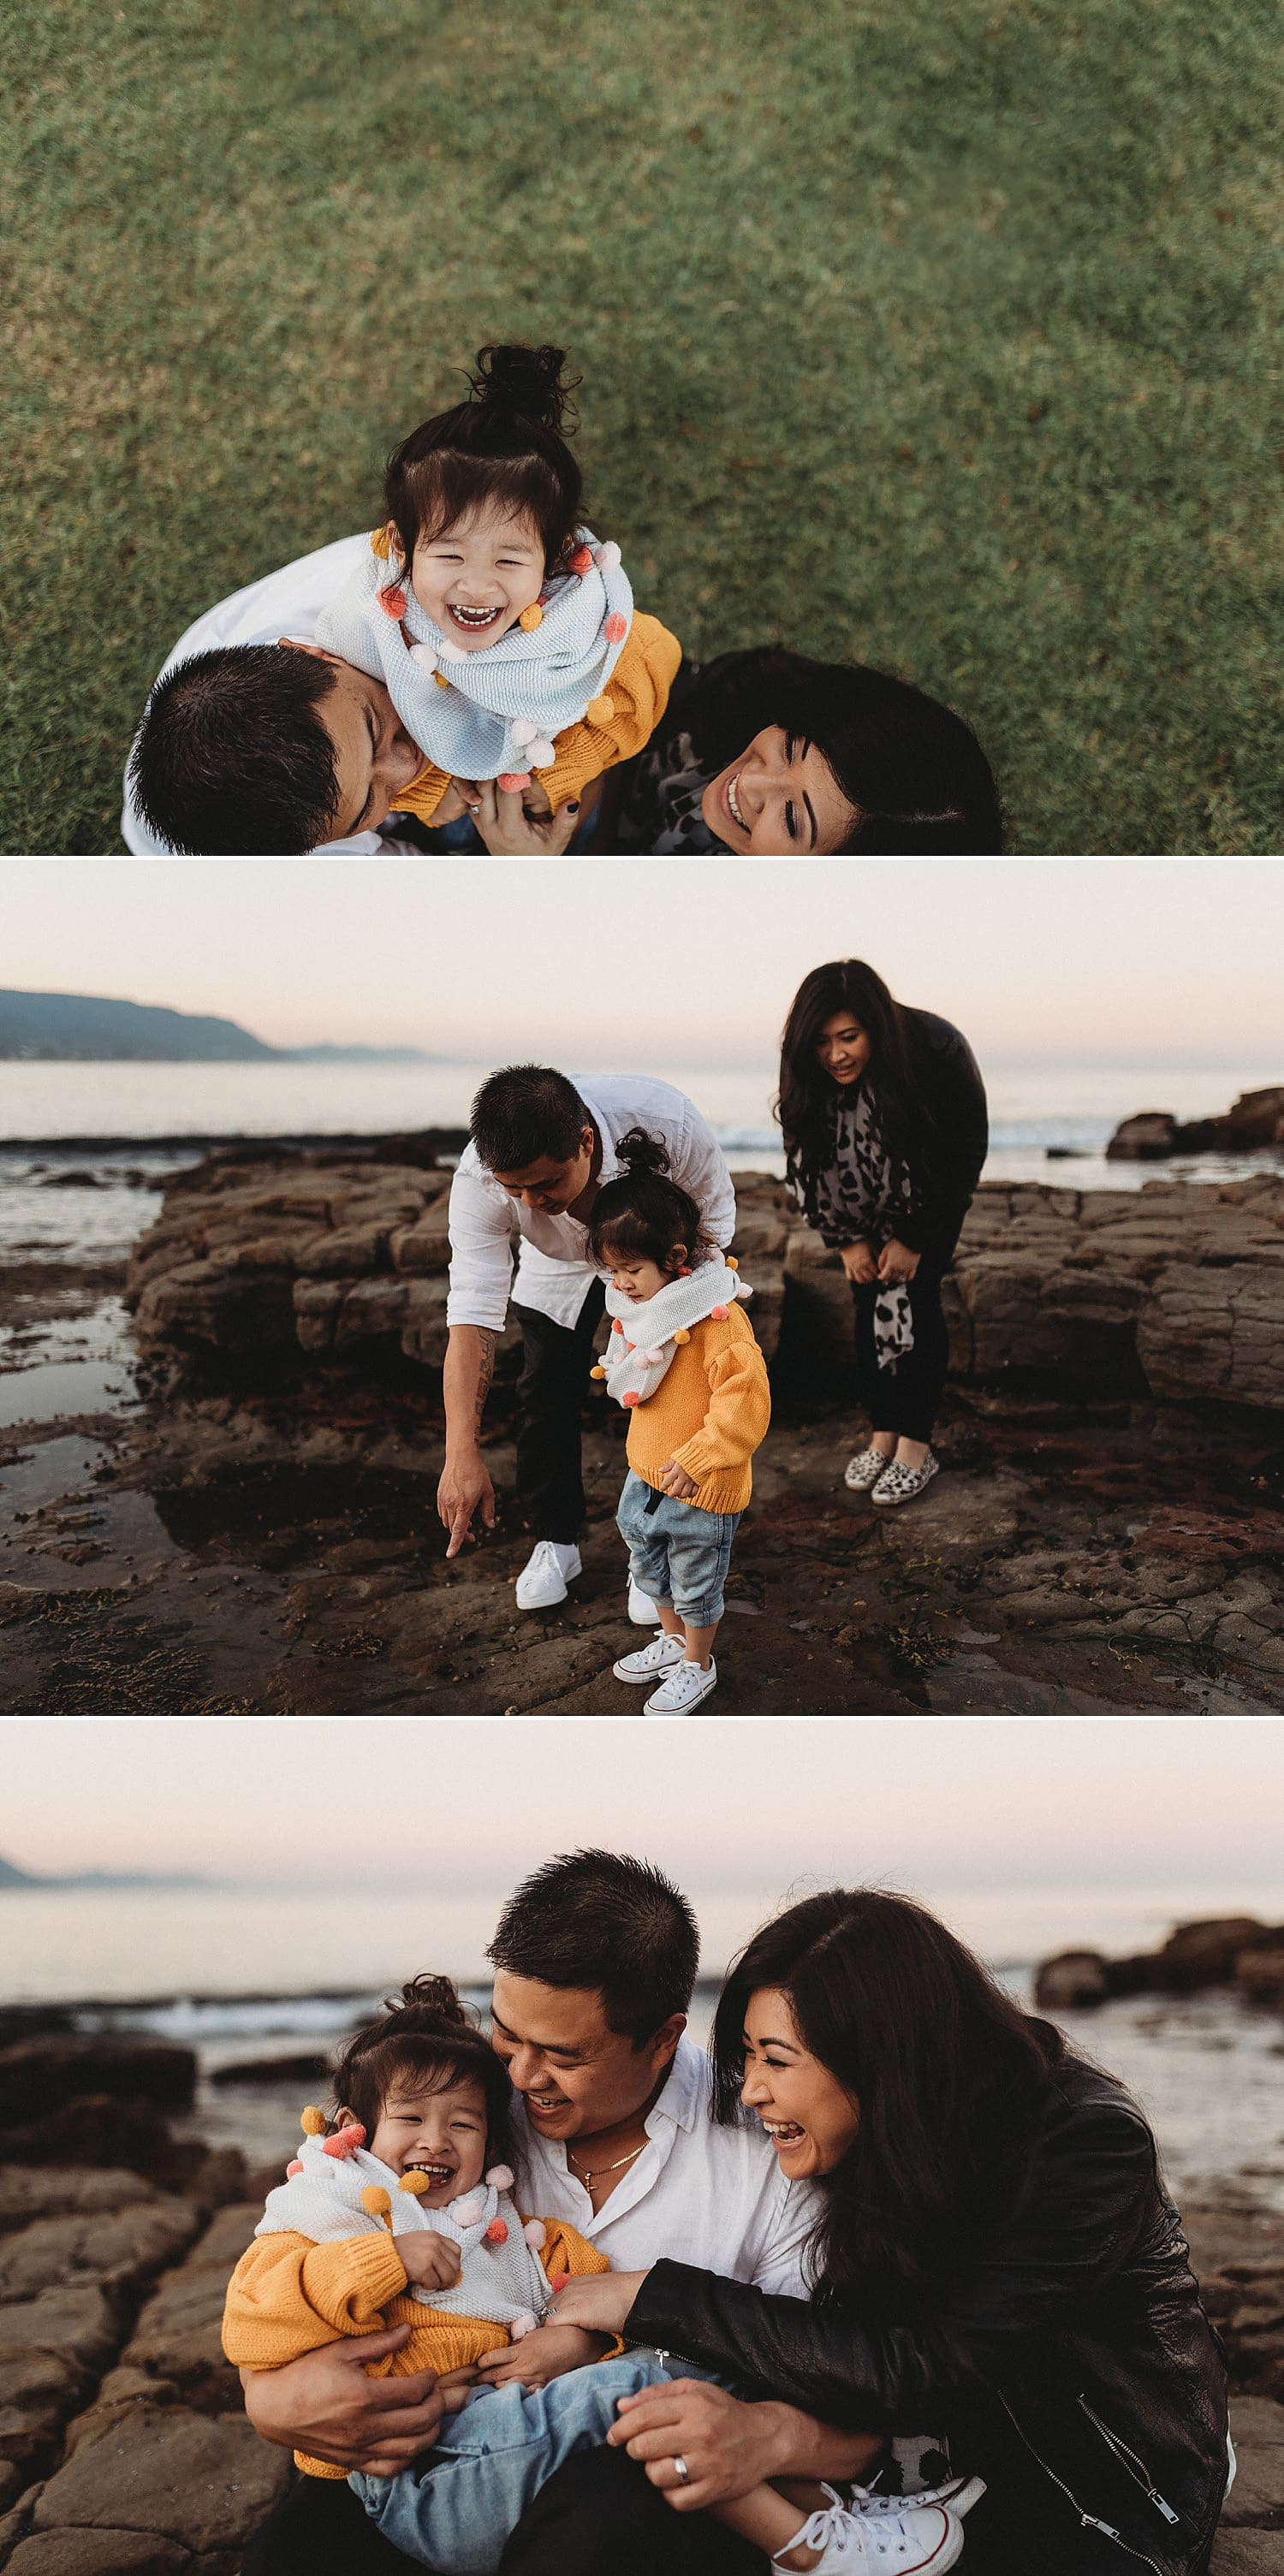 Sutherland-Shire-Photography-Lifestyle-Family-Beach-Session